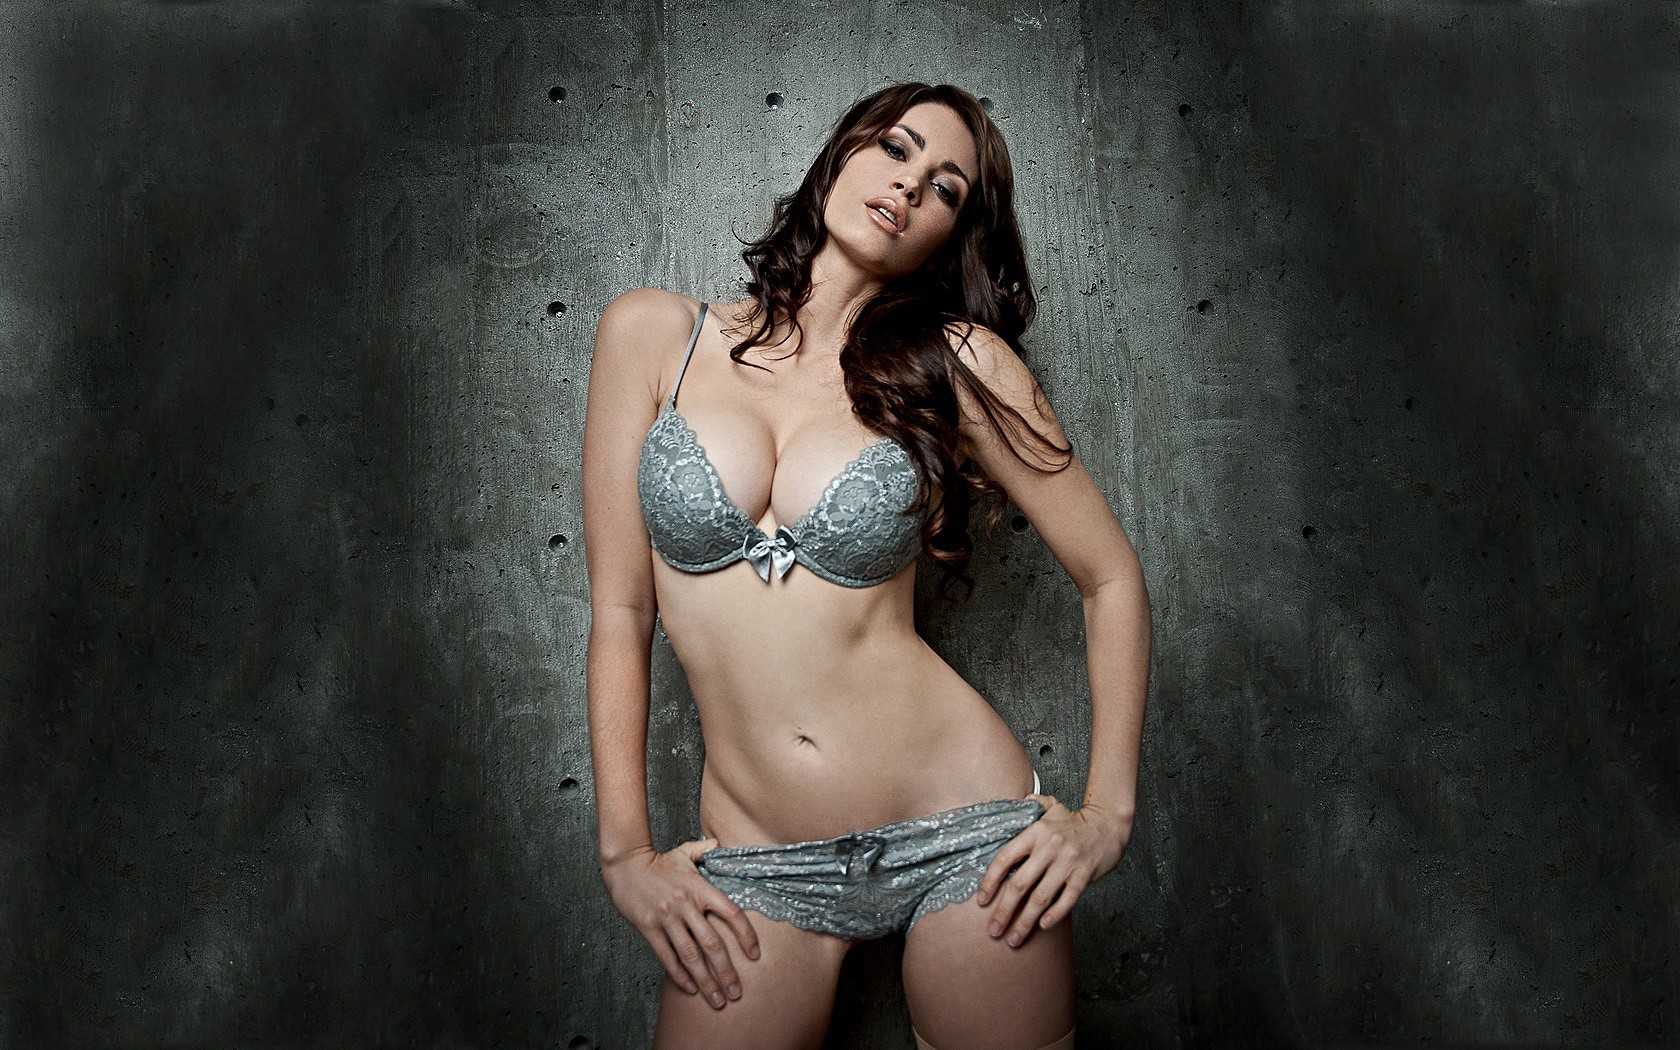 brunettes Women tanit phoenix HD Wallpaper